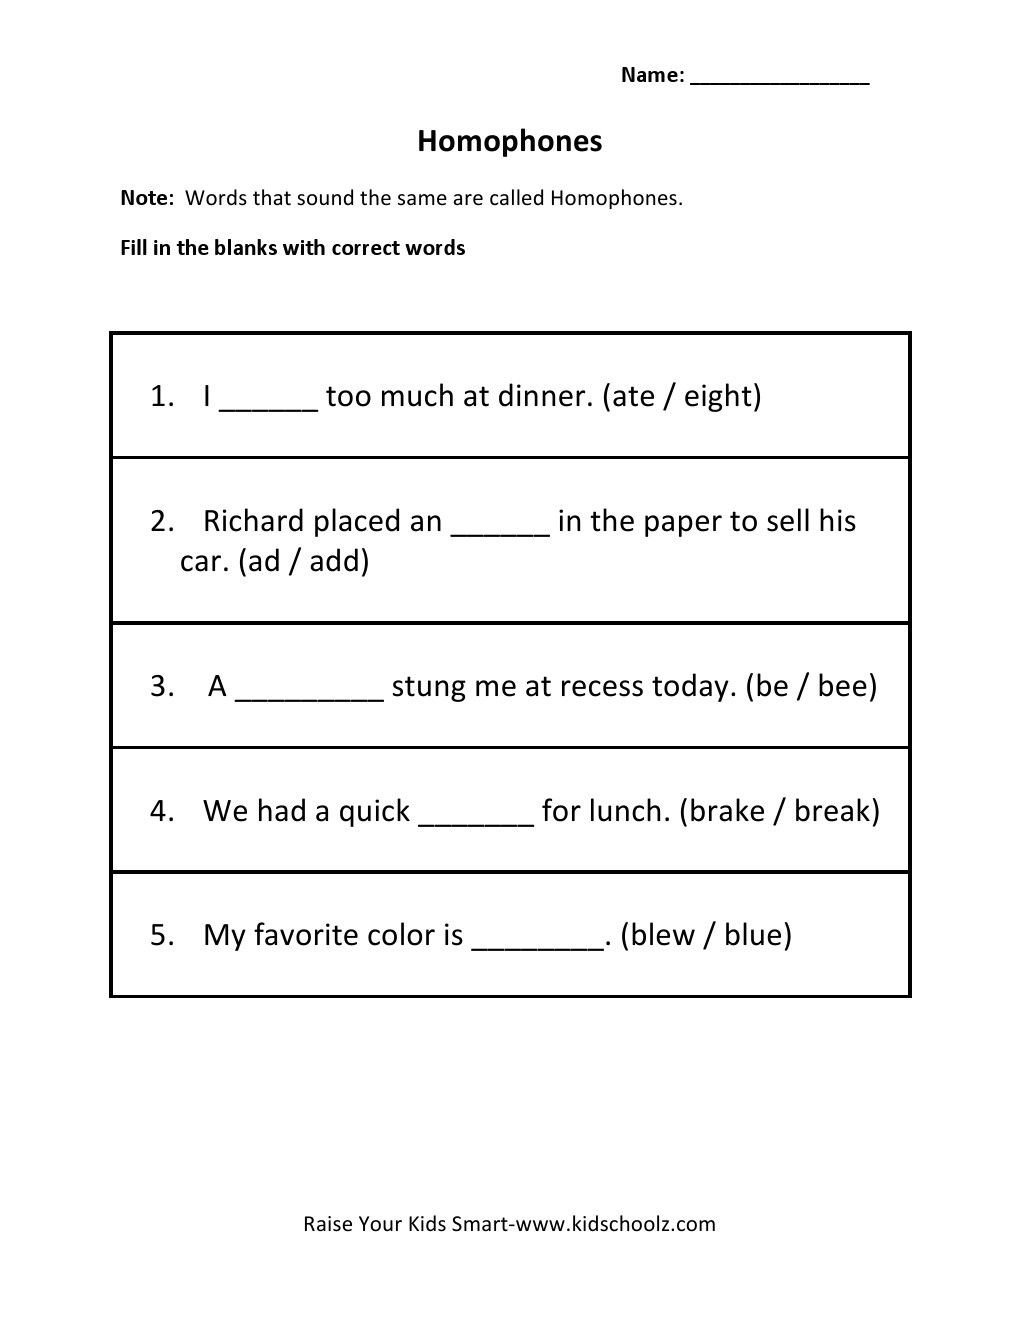 Homophones Worksheets 2nd Grade Homophones Worksheets for Grade 5